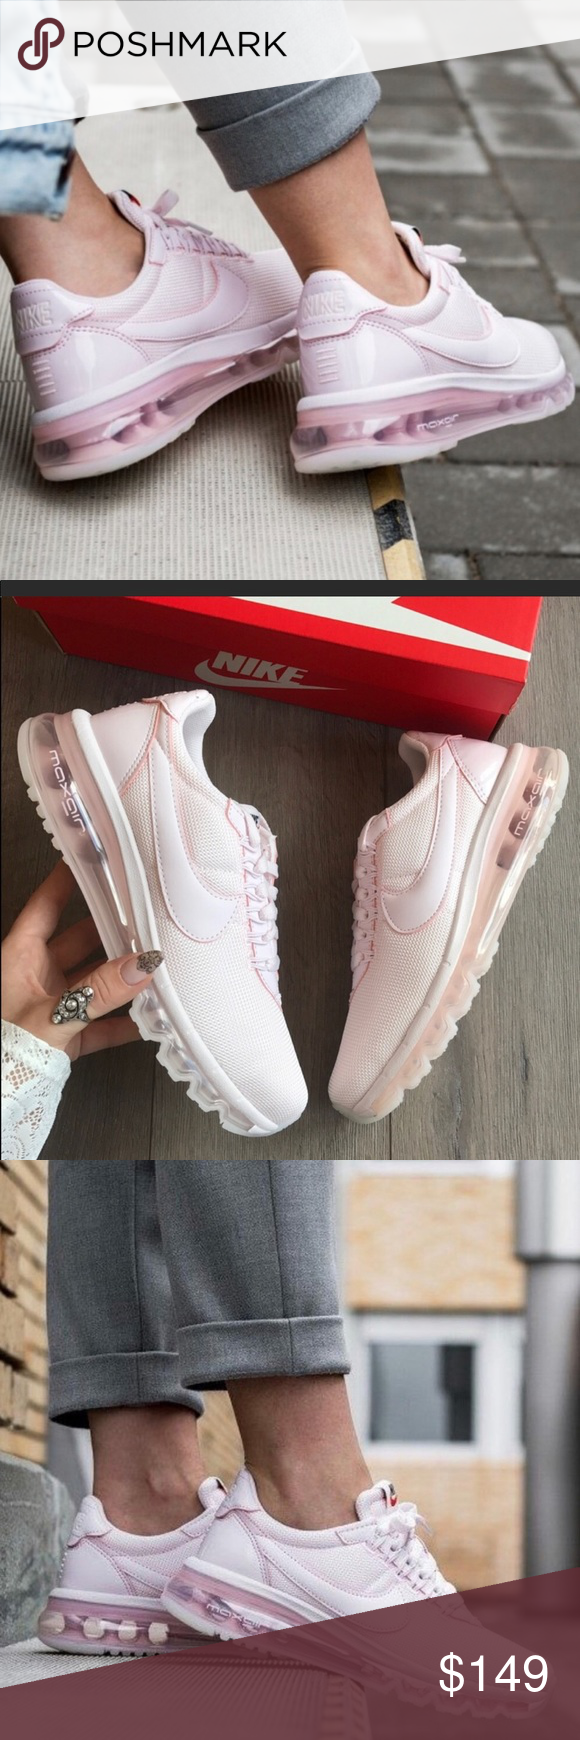 6a6c82208a NWT🦄Nike Air Max Zero SE pink BrNd new with box, price is firm ...